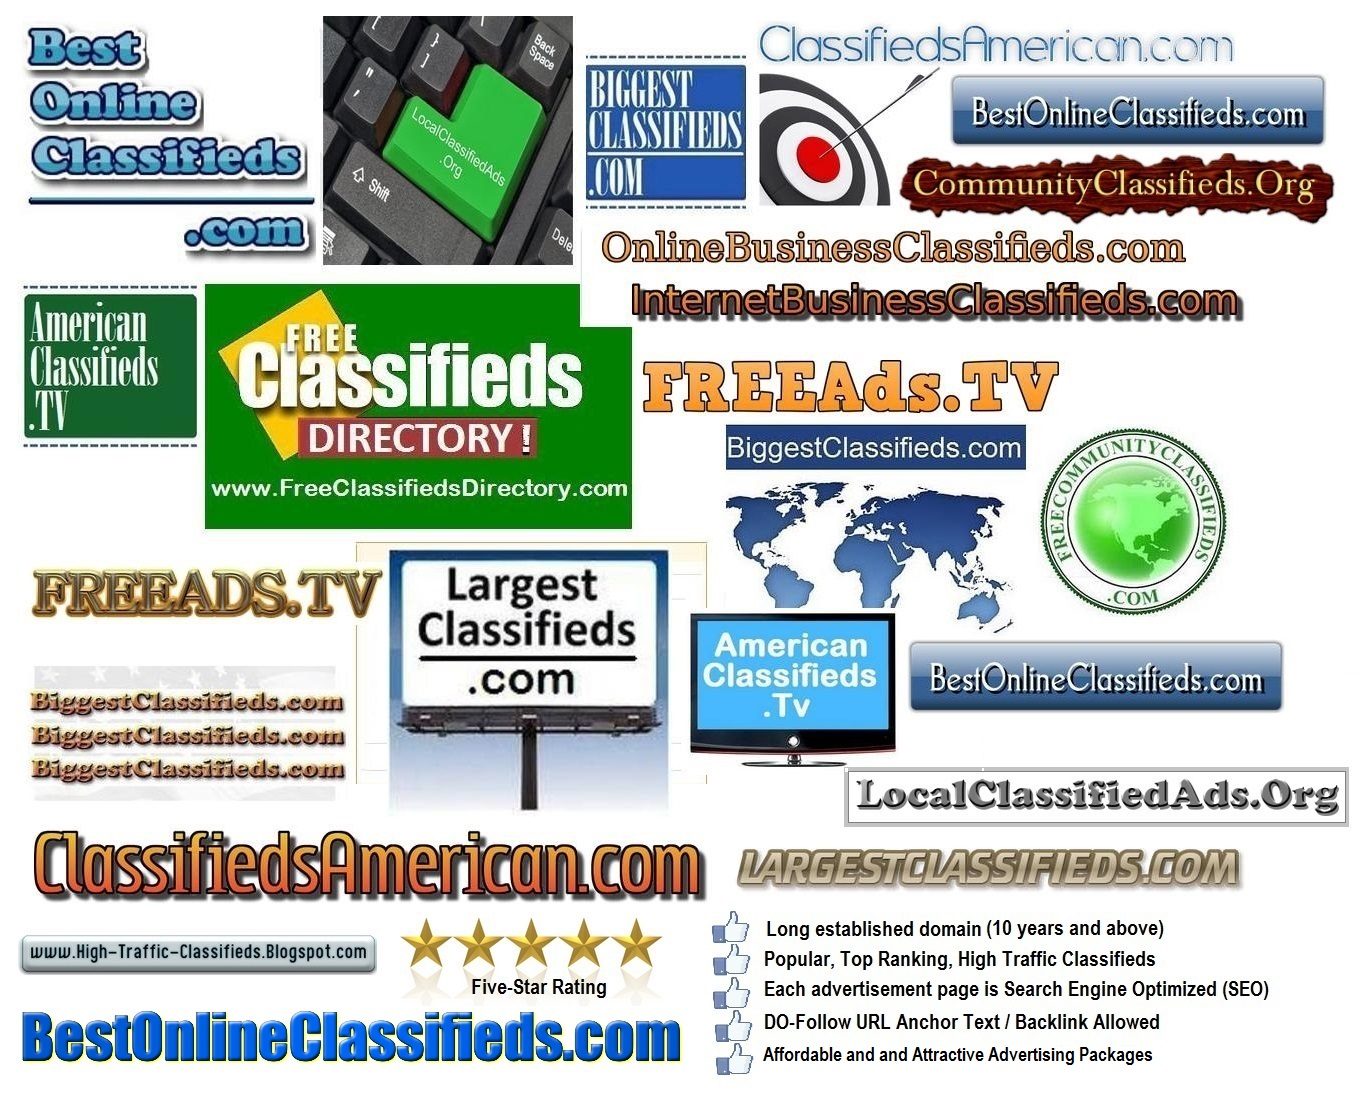 Sites Like Craigslist American Classifieds